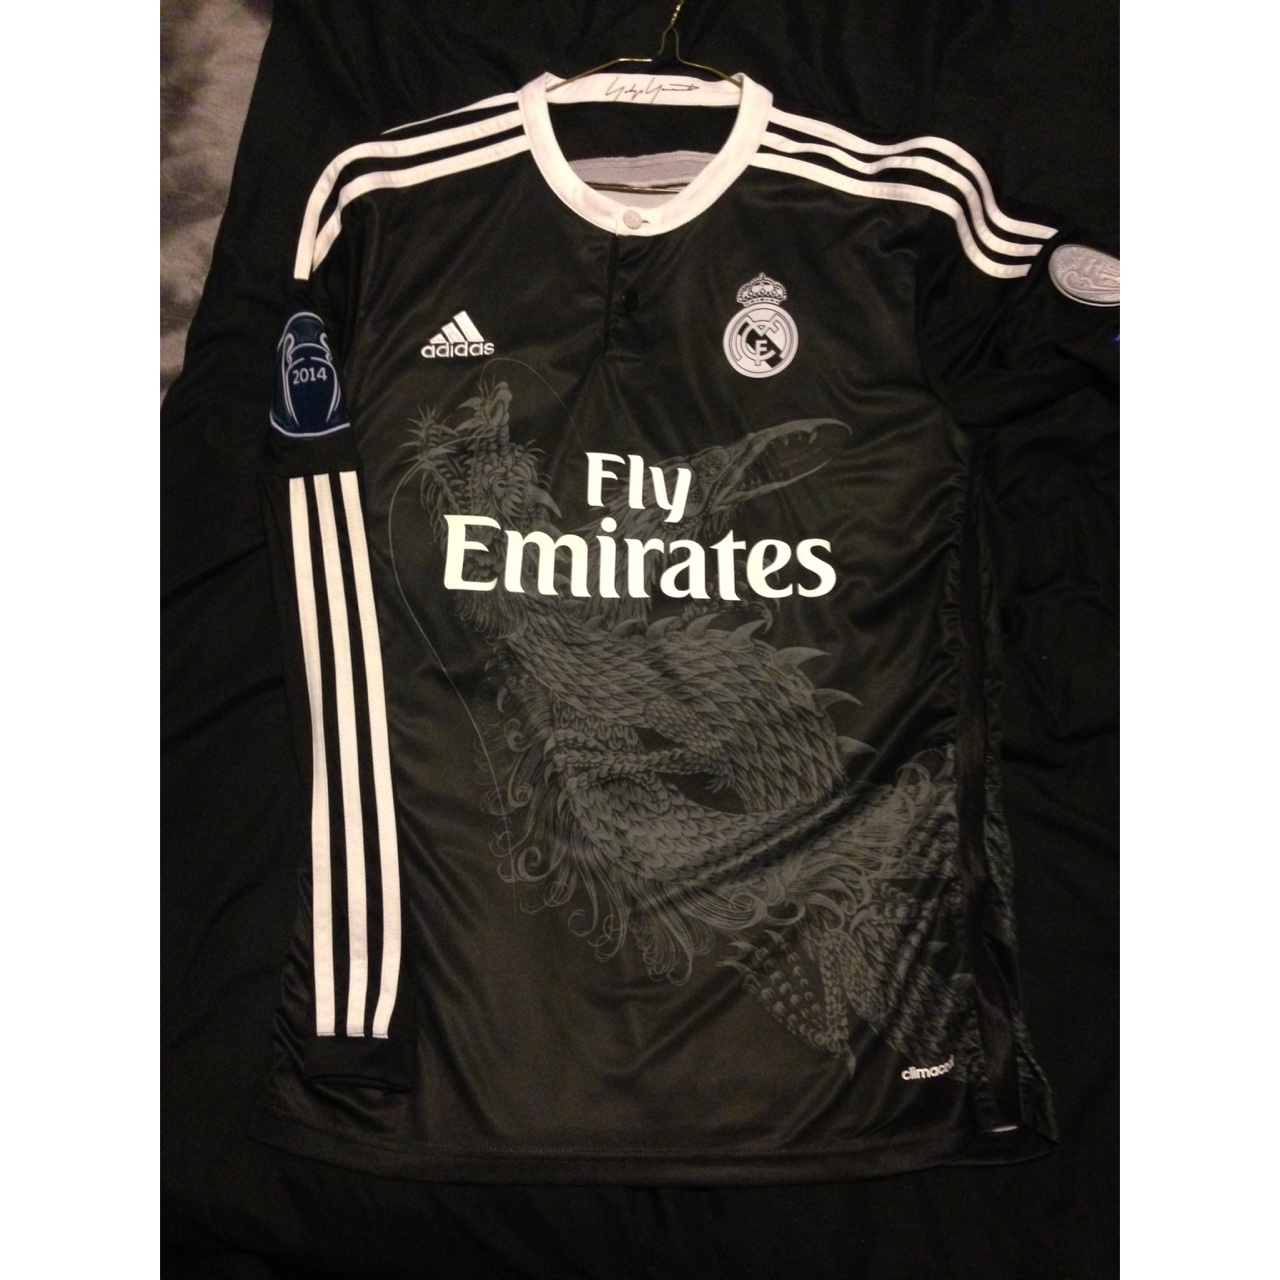 new style e7b32 71dfb Rare real madrid third kit, very good condition.... - Depop